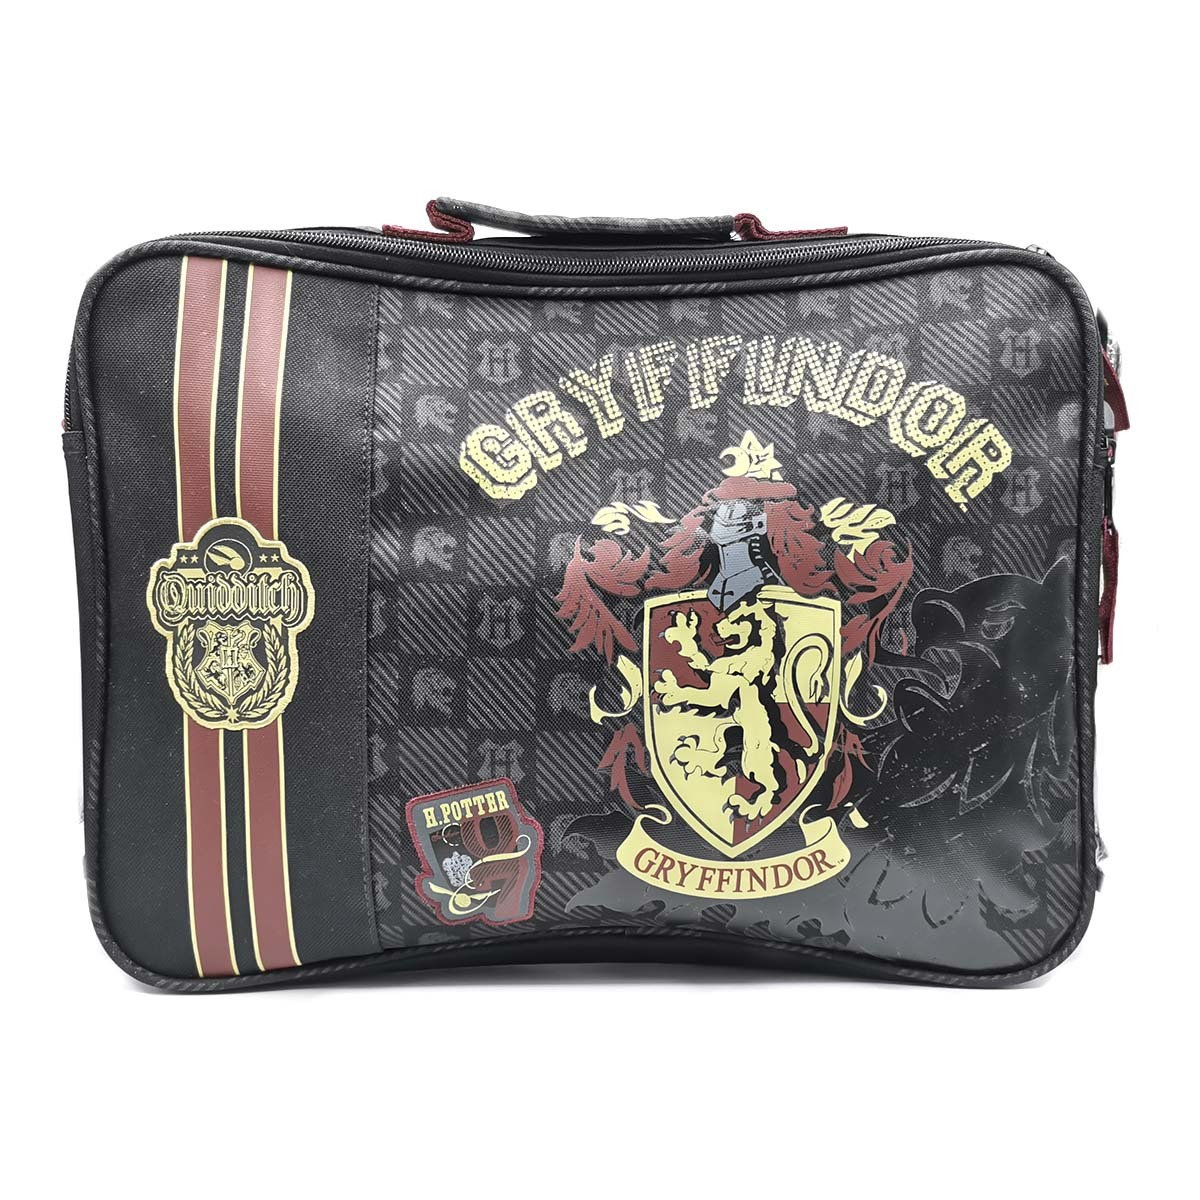 Bandolera Gryffindor Harry Potter